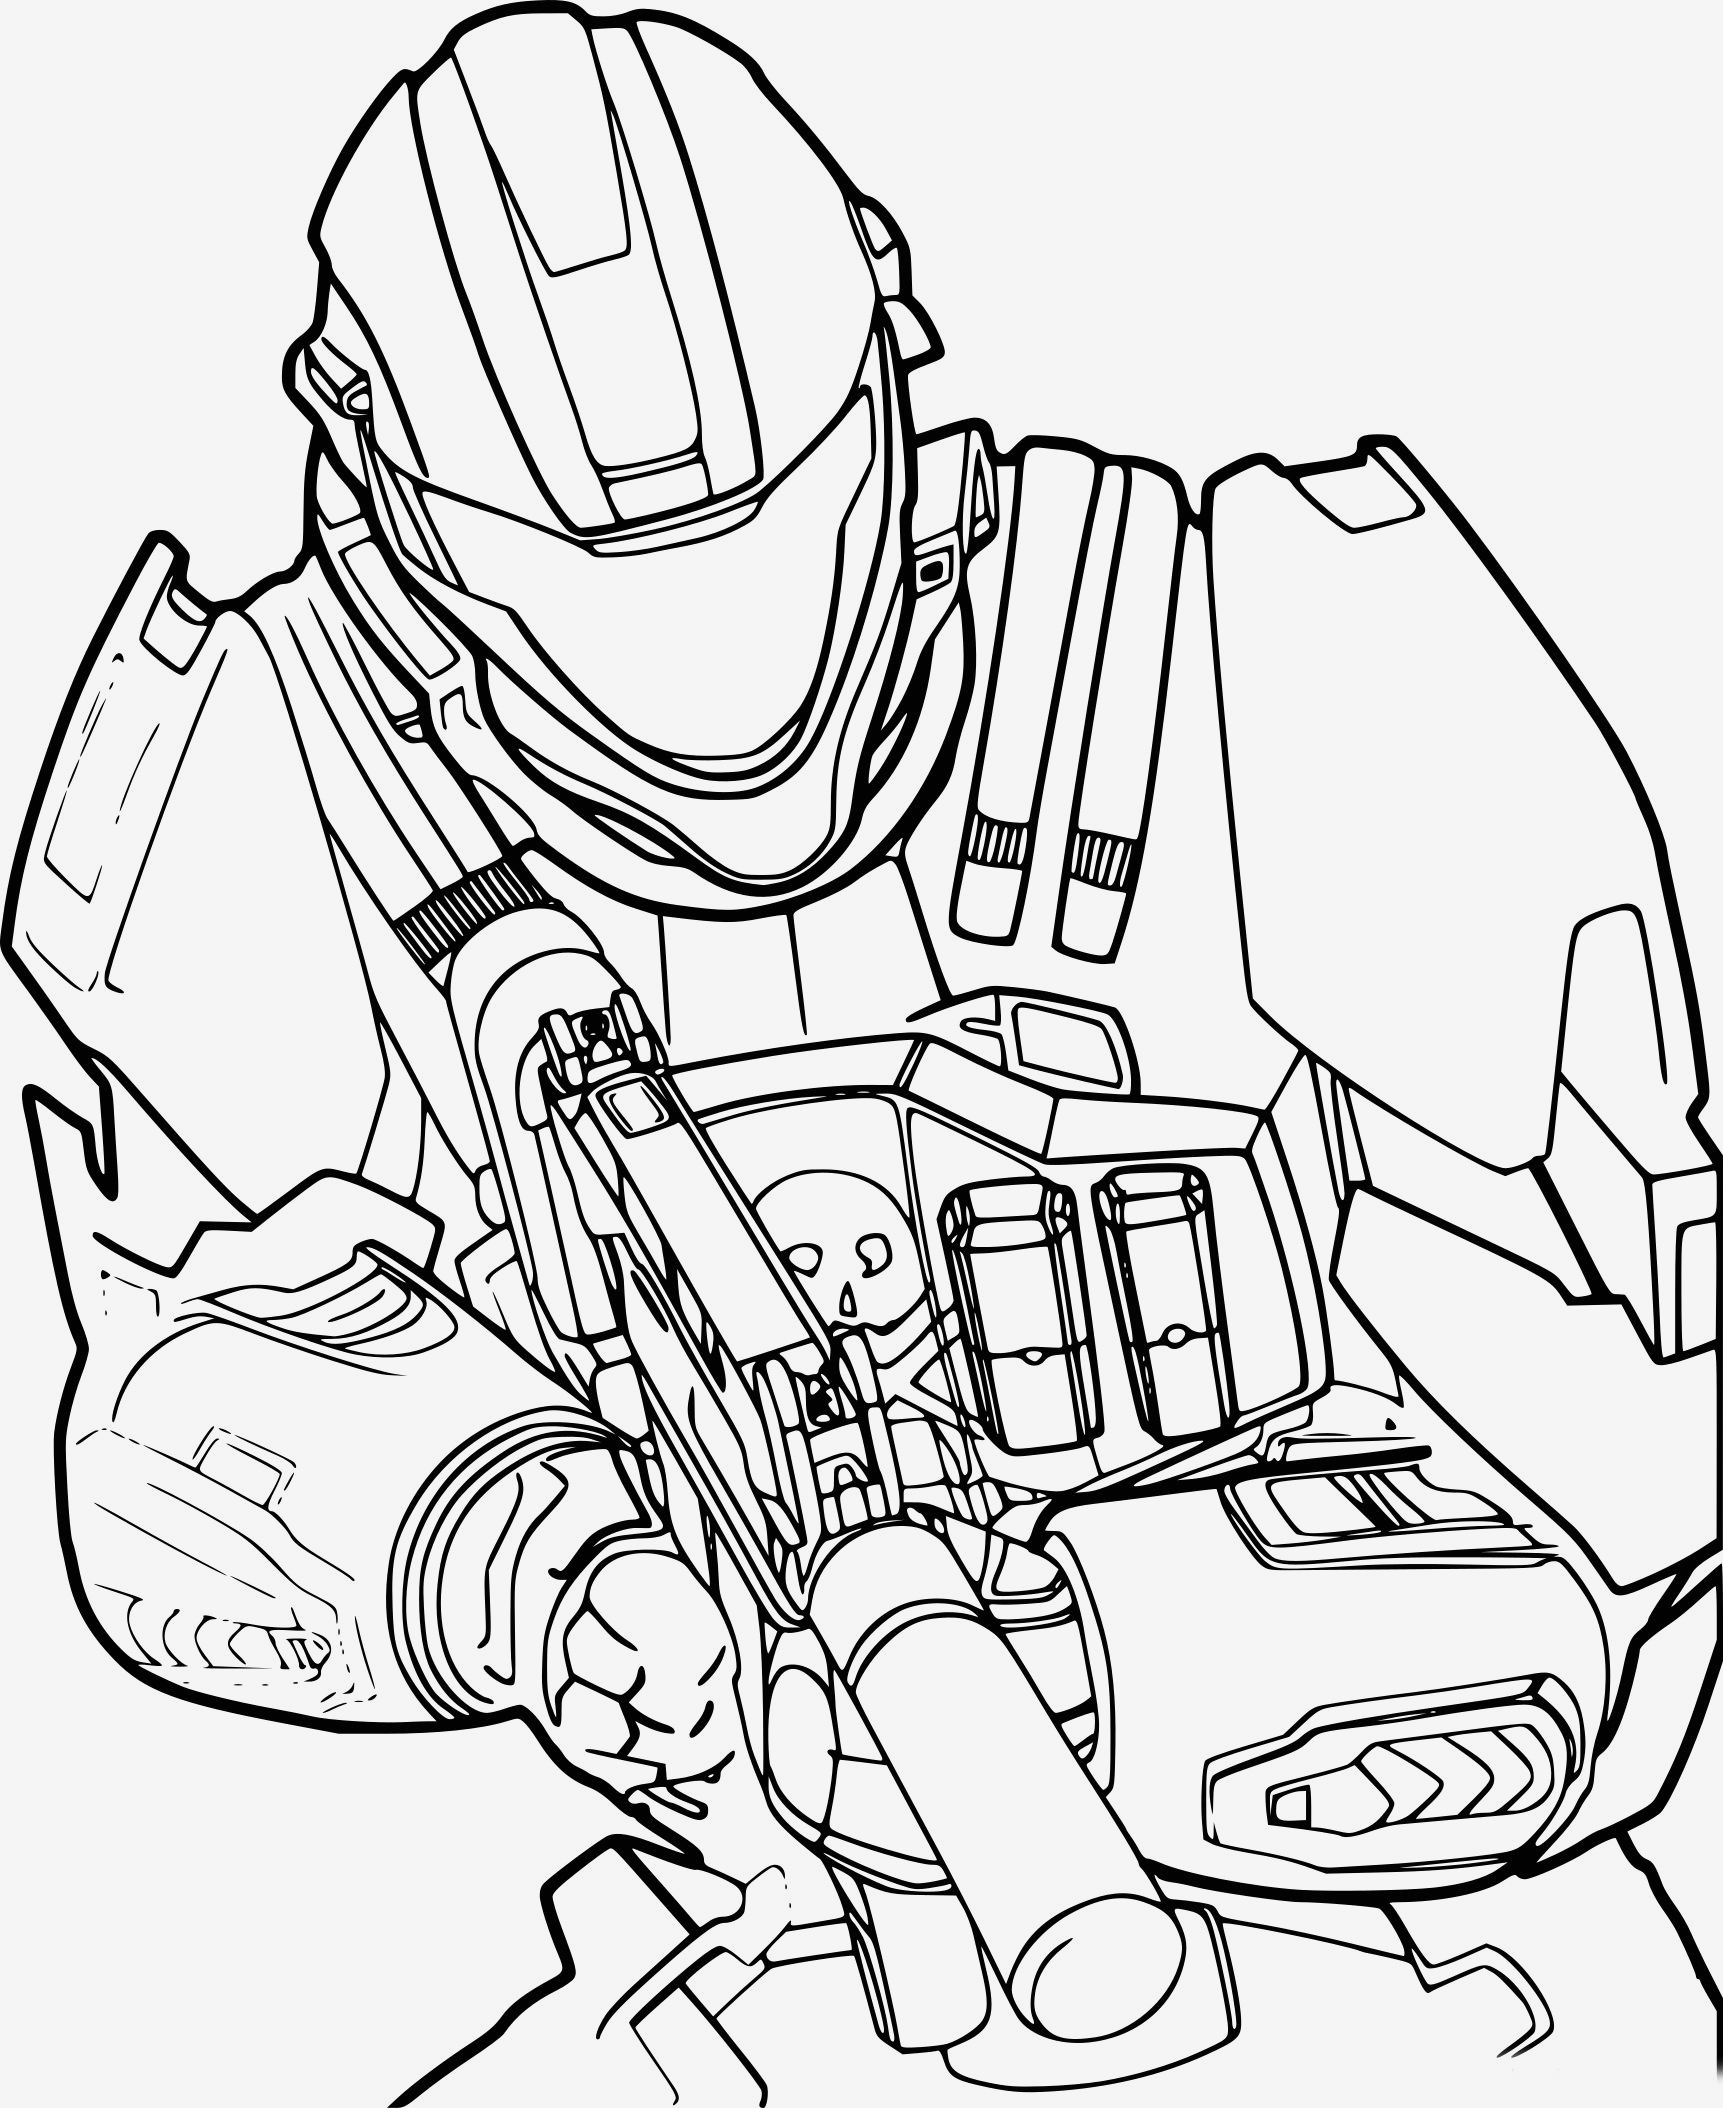 Halo Coloring Pages to Print  Gallery 1r - Free Download